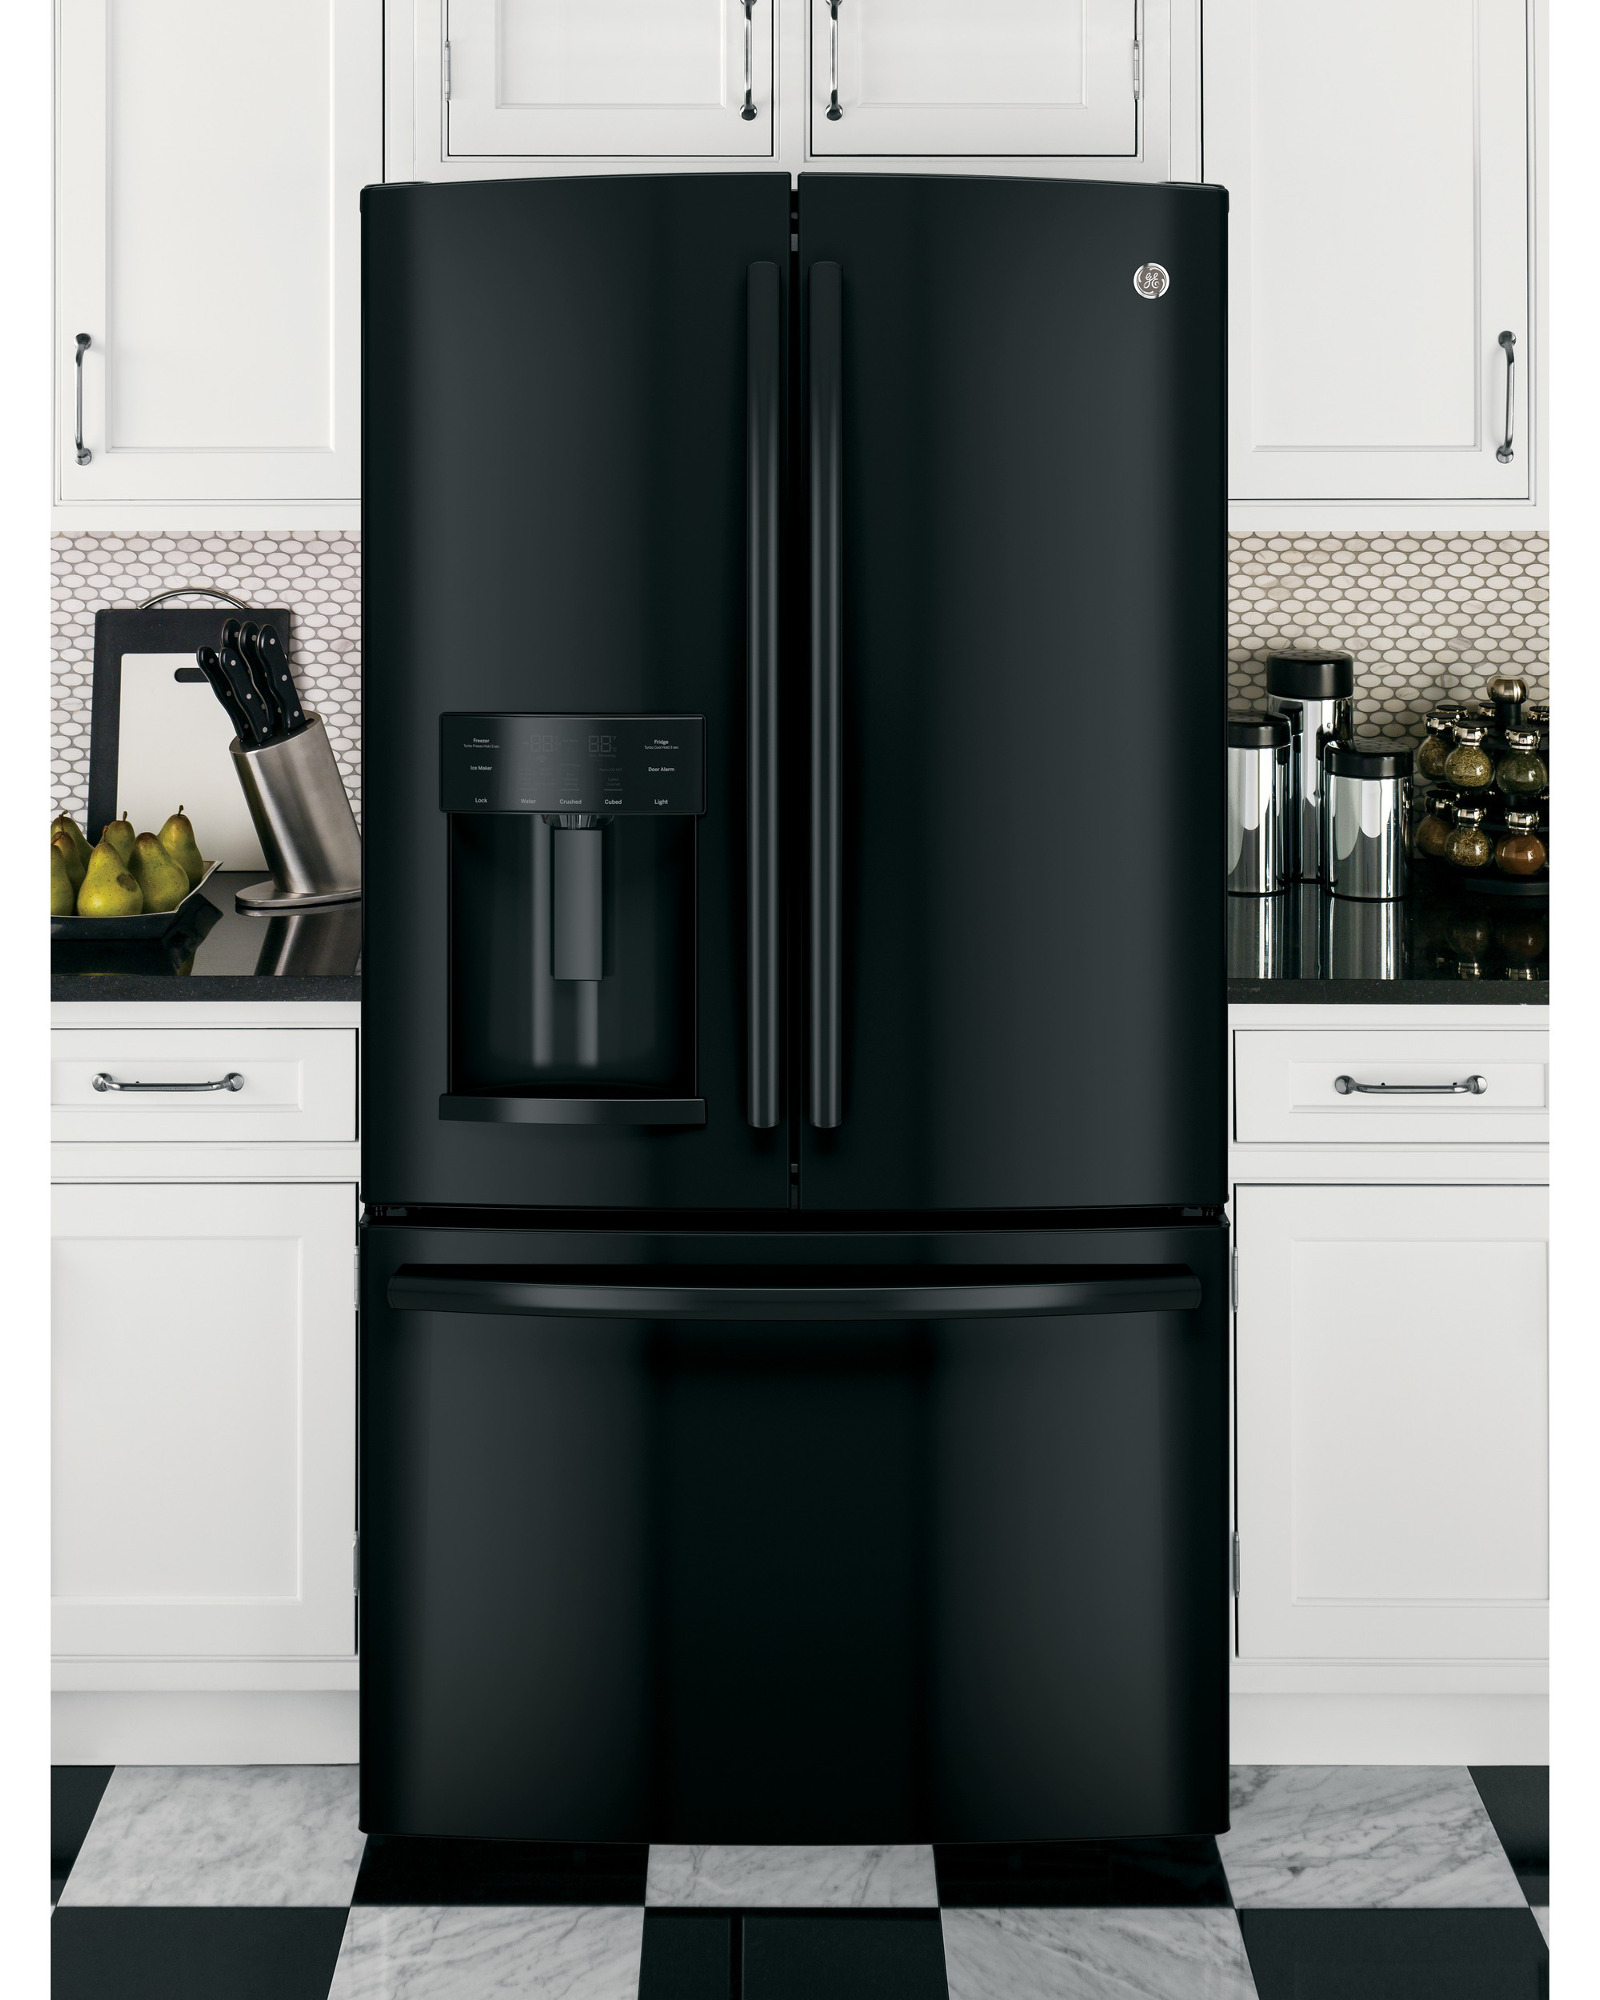 GE Appliances GFE26GGHBB 25.7 cu. ft. French-Door Ice and Water Refrigerator - Black